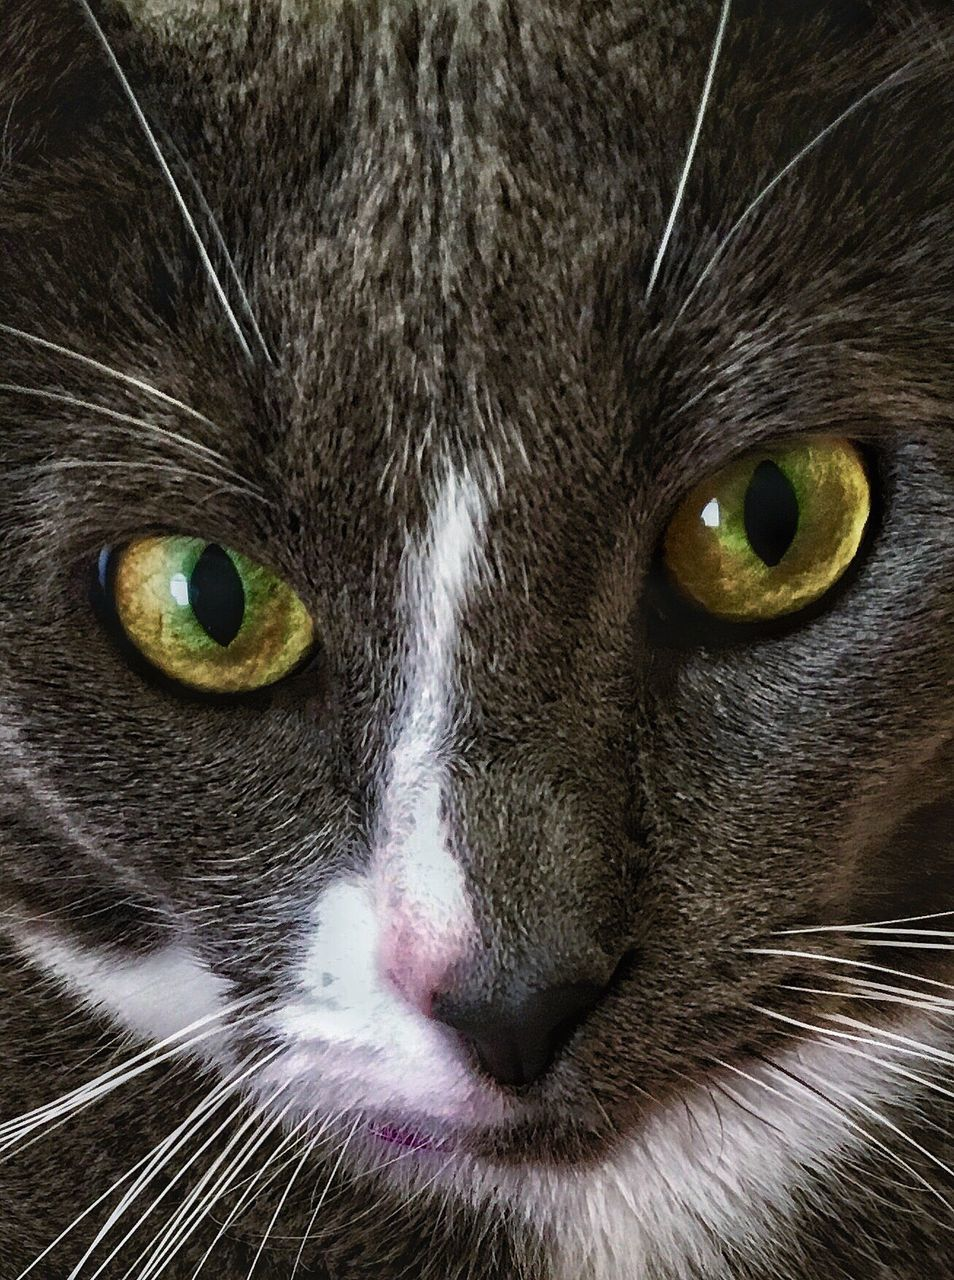 domestic cat, pets, feline, domestic animals, one animal, animal themes, cat, whisker, mammal, portrait, yellow eyes, animal head, looking at camera, animal eye, animal body part, close-up, carnivora, no people, siamese cat, indoors, day